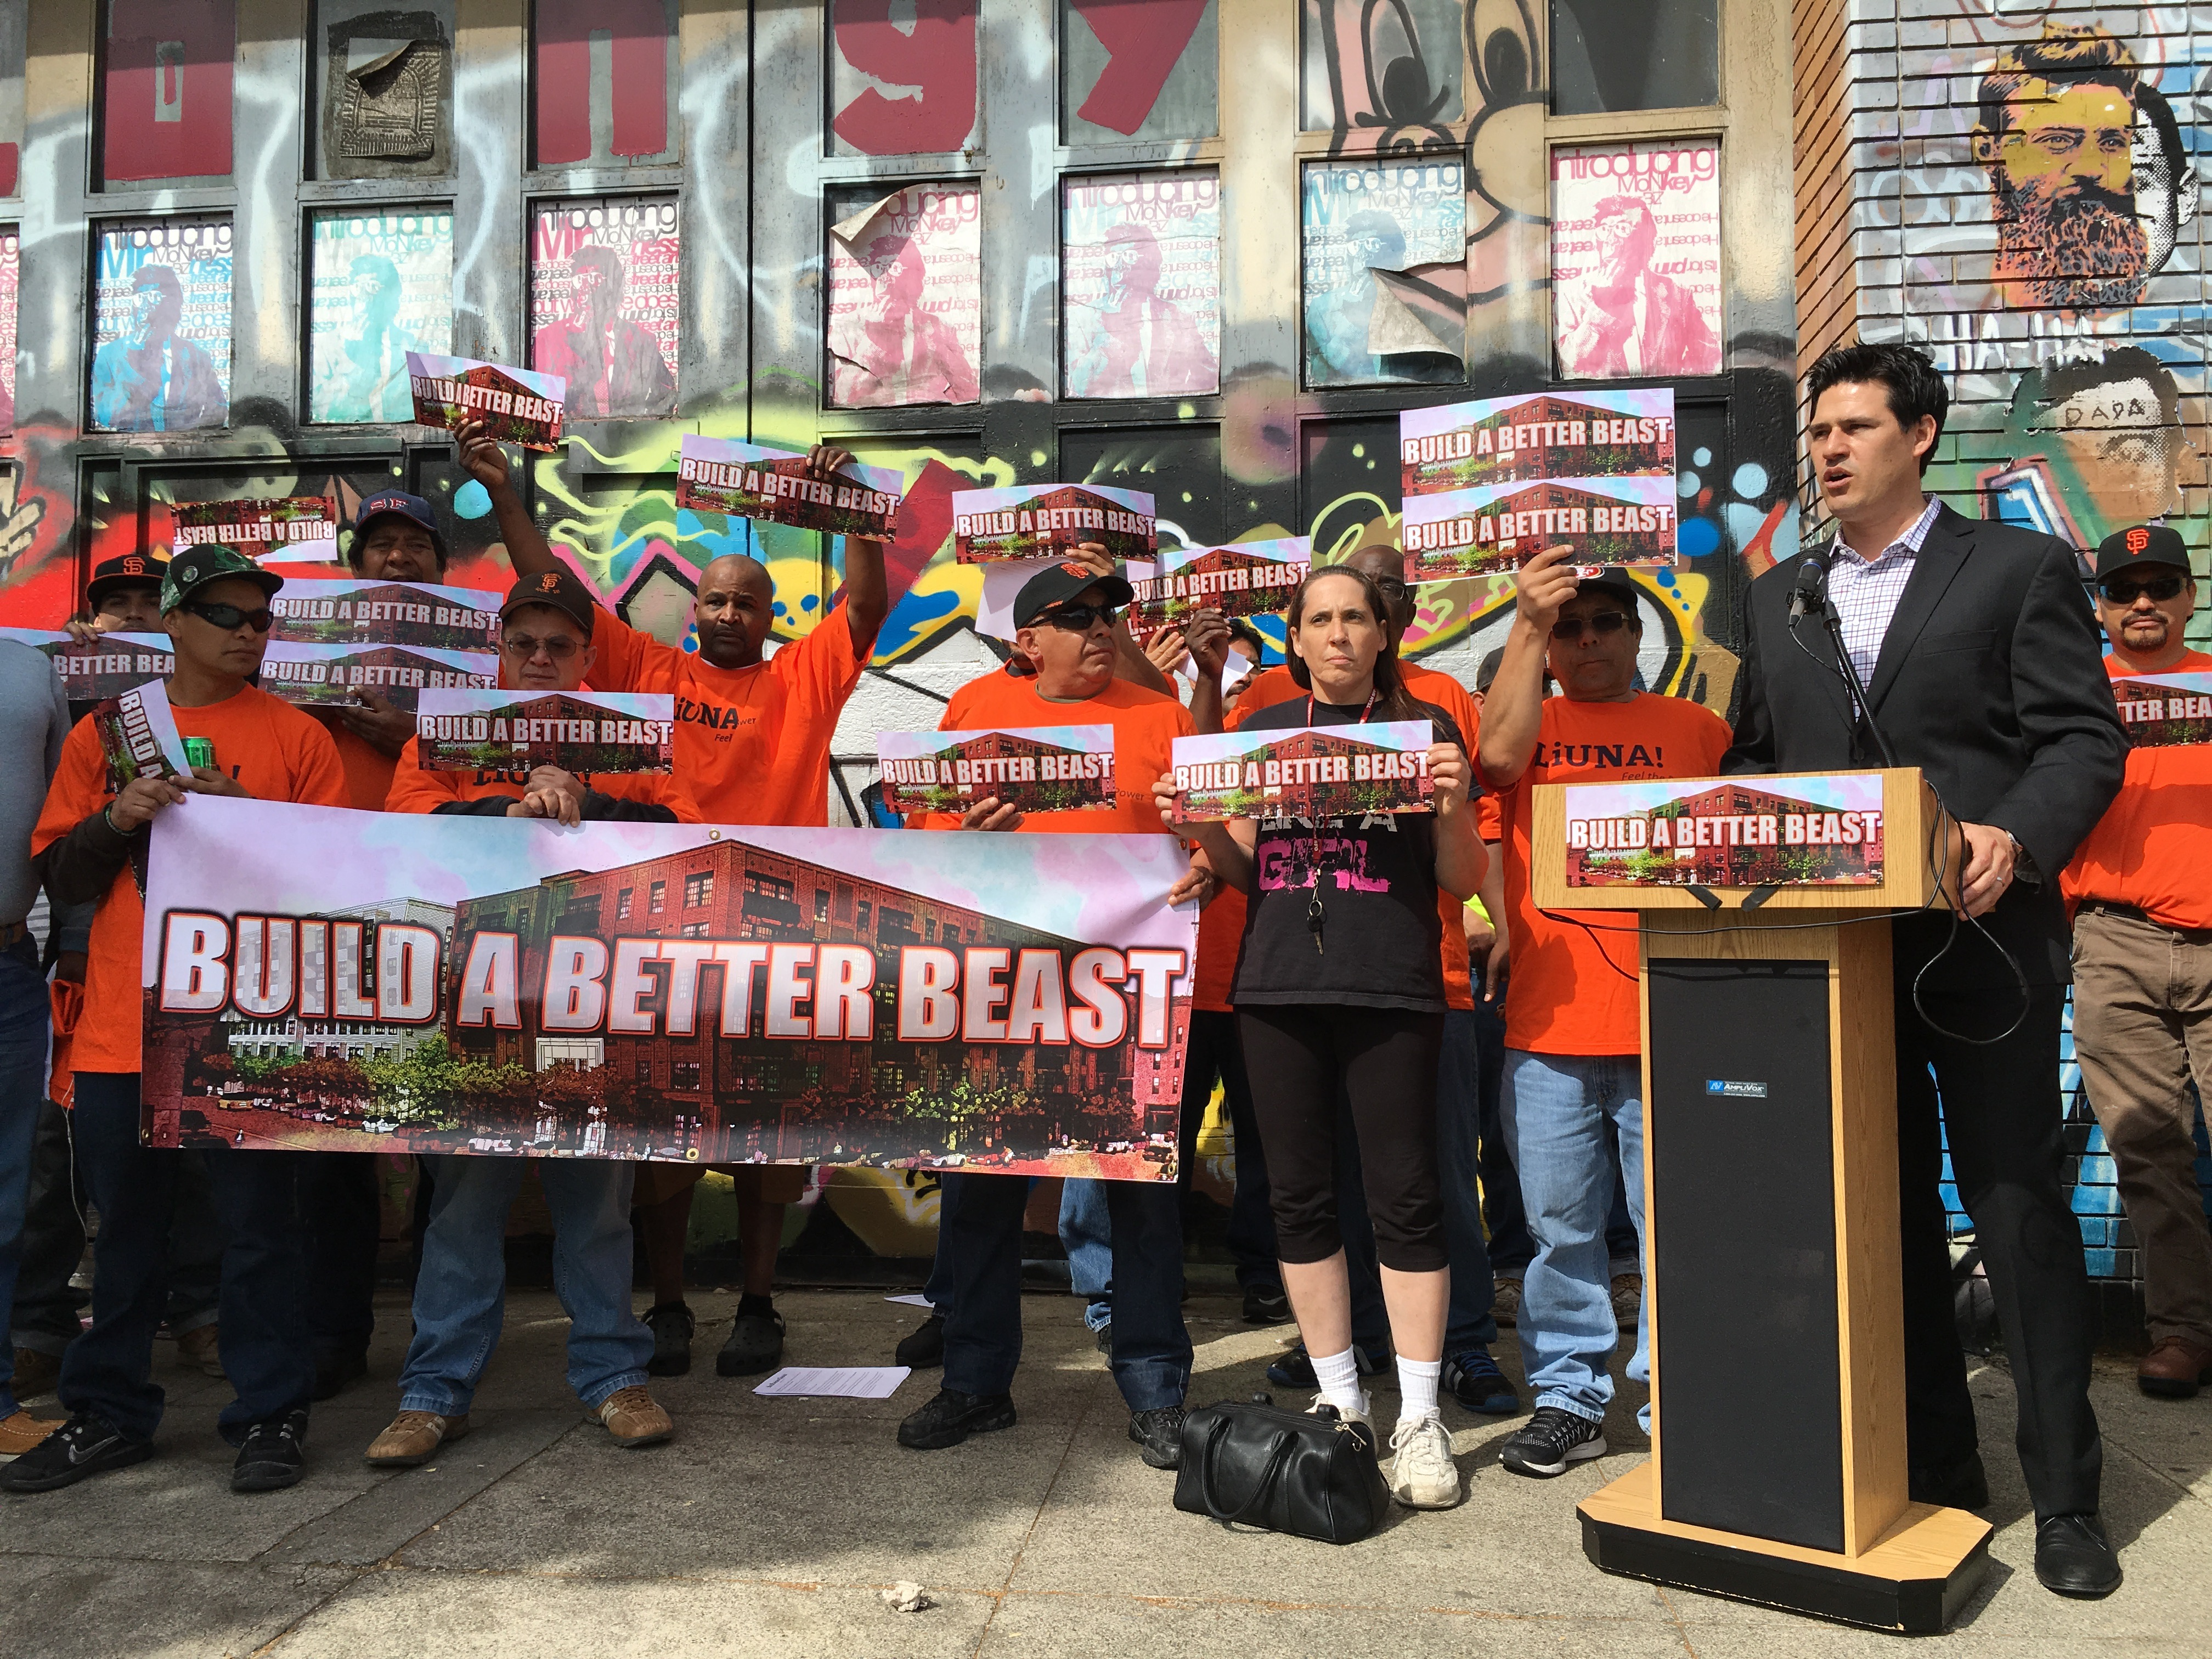 Construction Union Opposes Bryant St. Housing Project